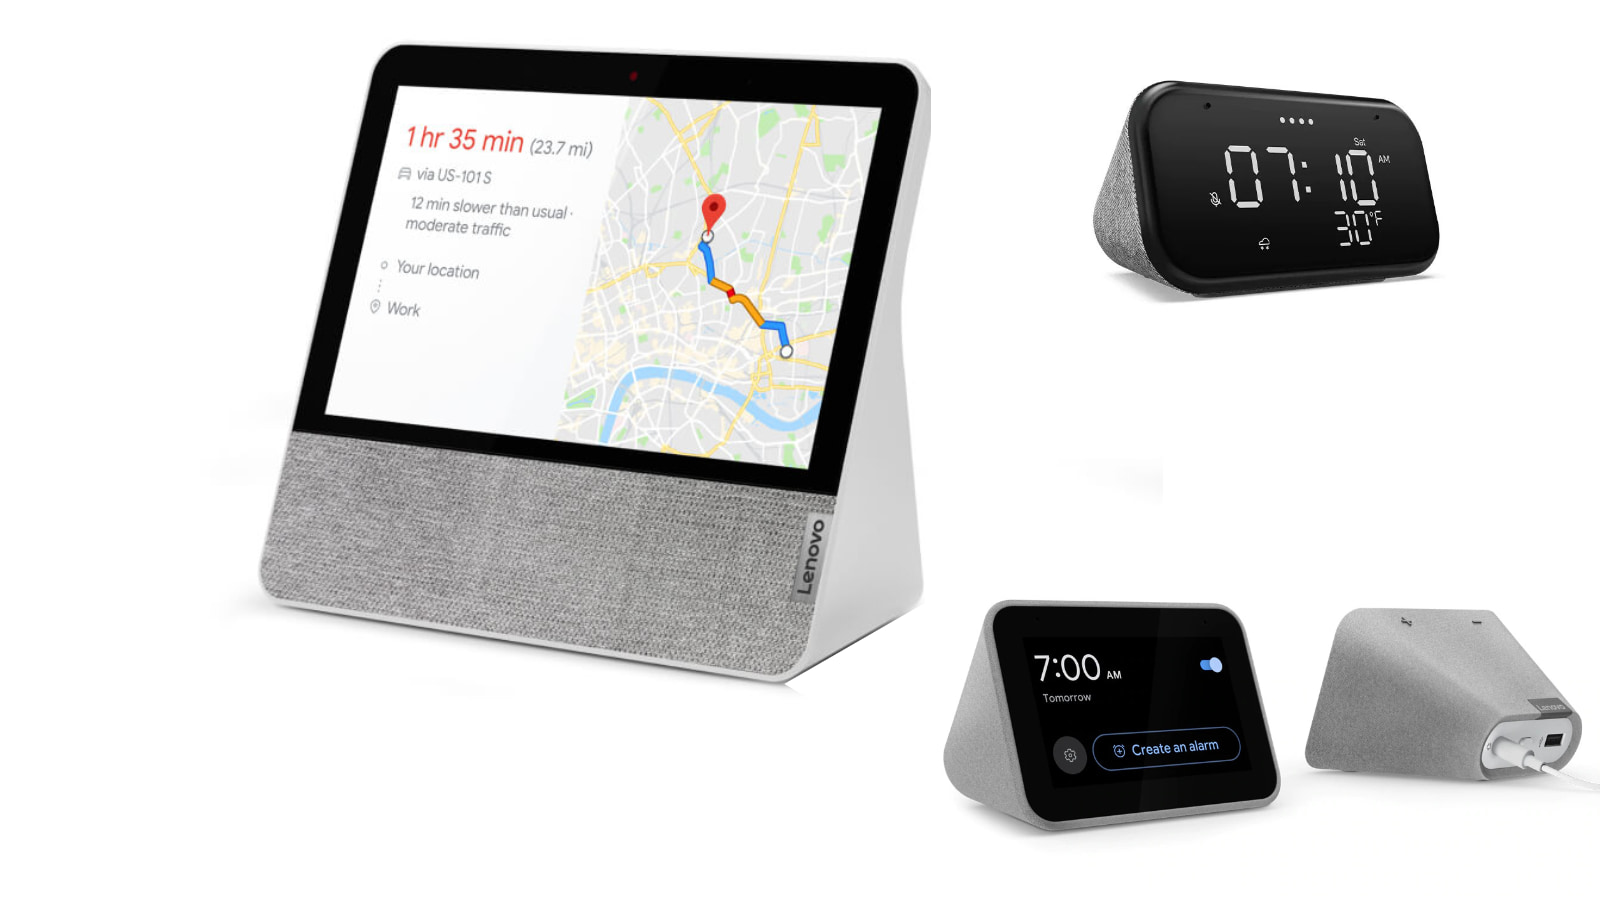 3 Lenovo smart devices with Google Assistant under $60